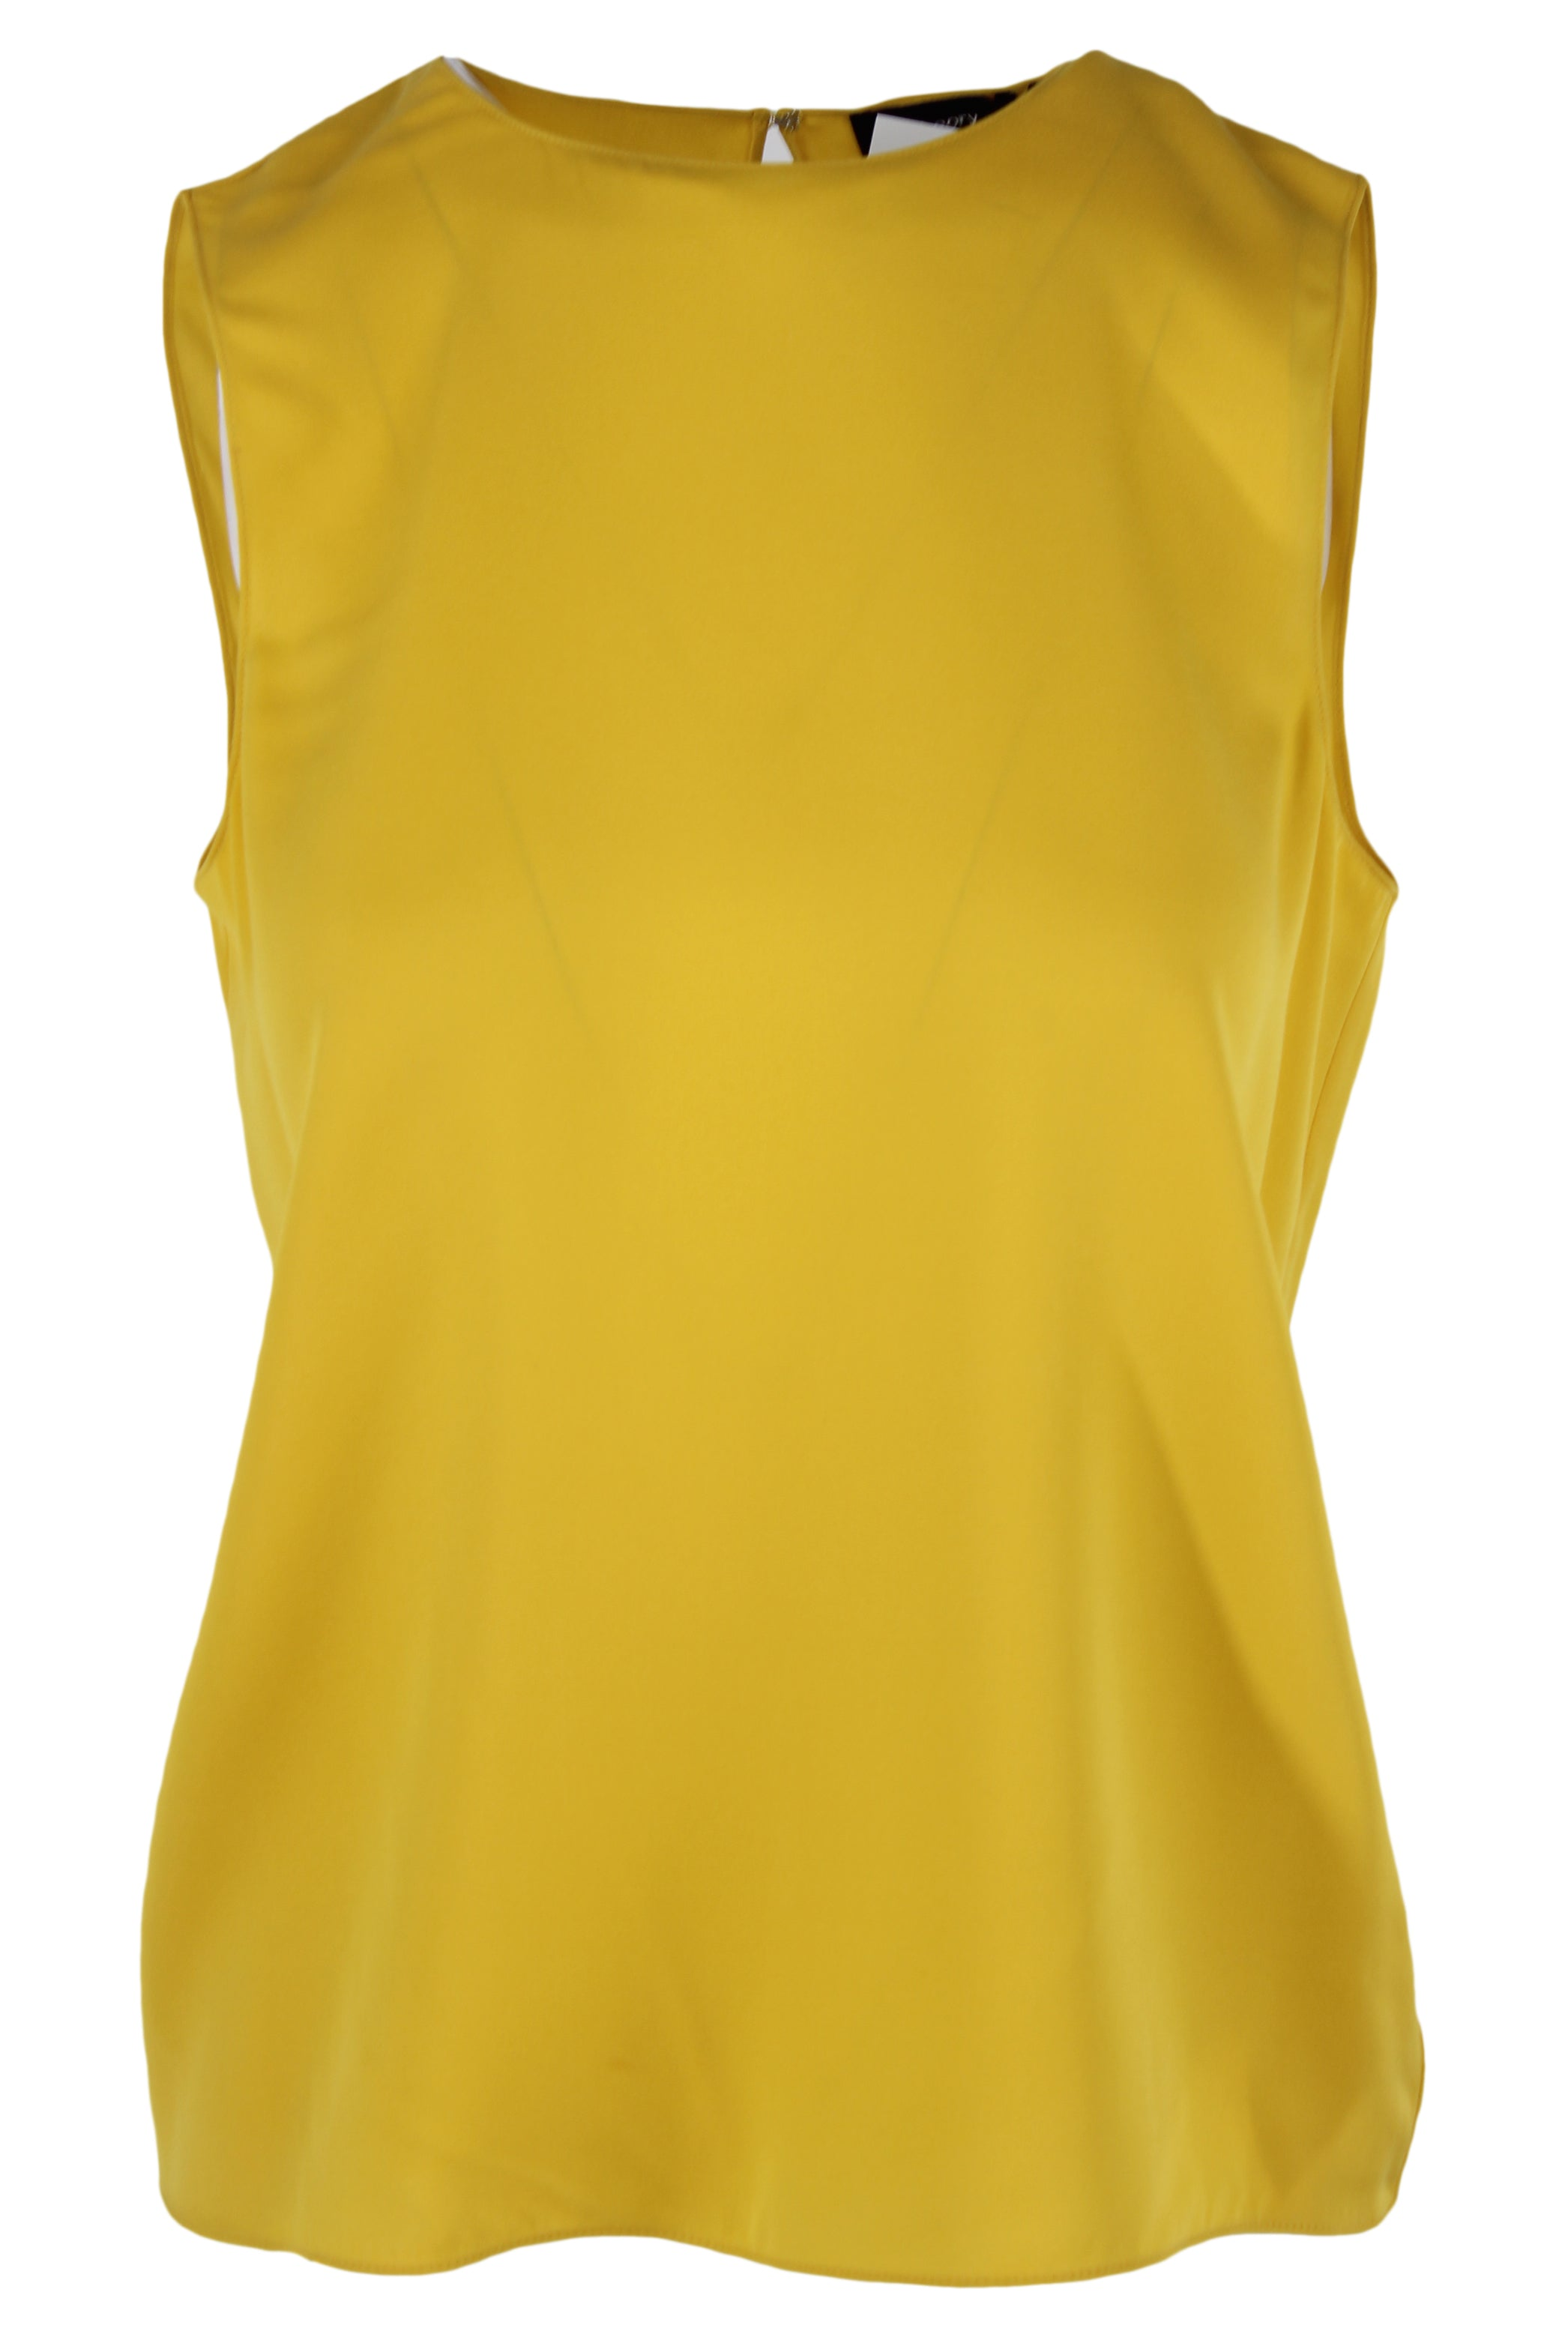 theory mustard silk tank blouse. features a hook keyhole back closure & a round neckline.